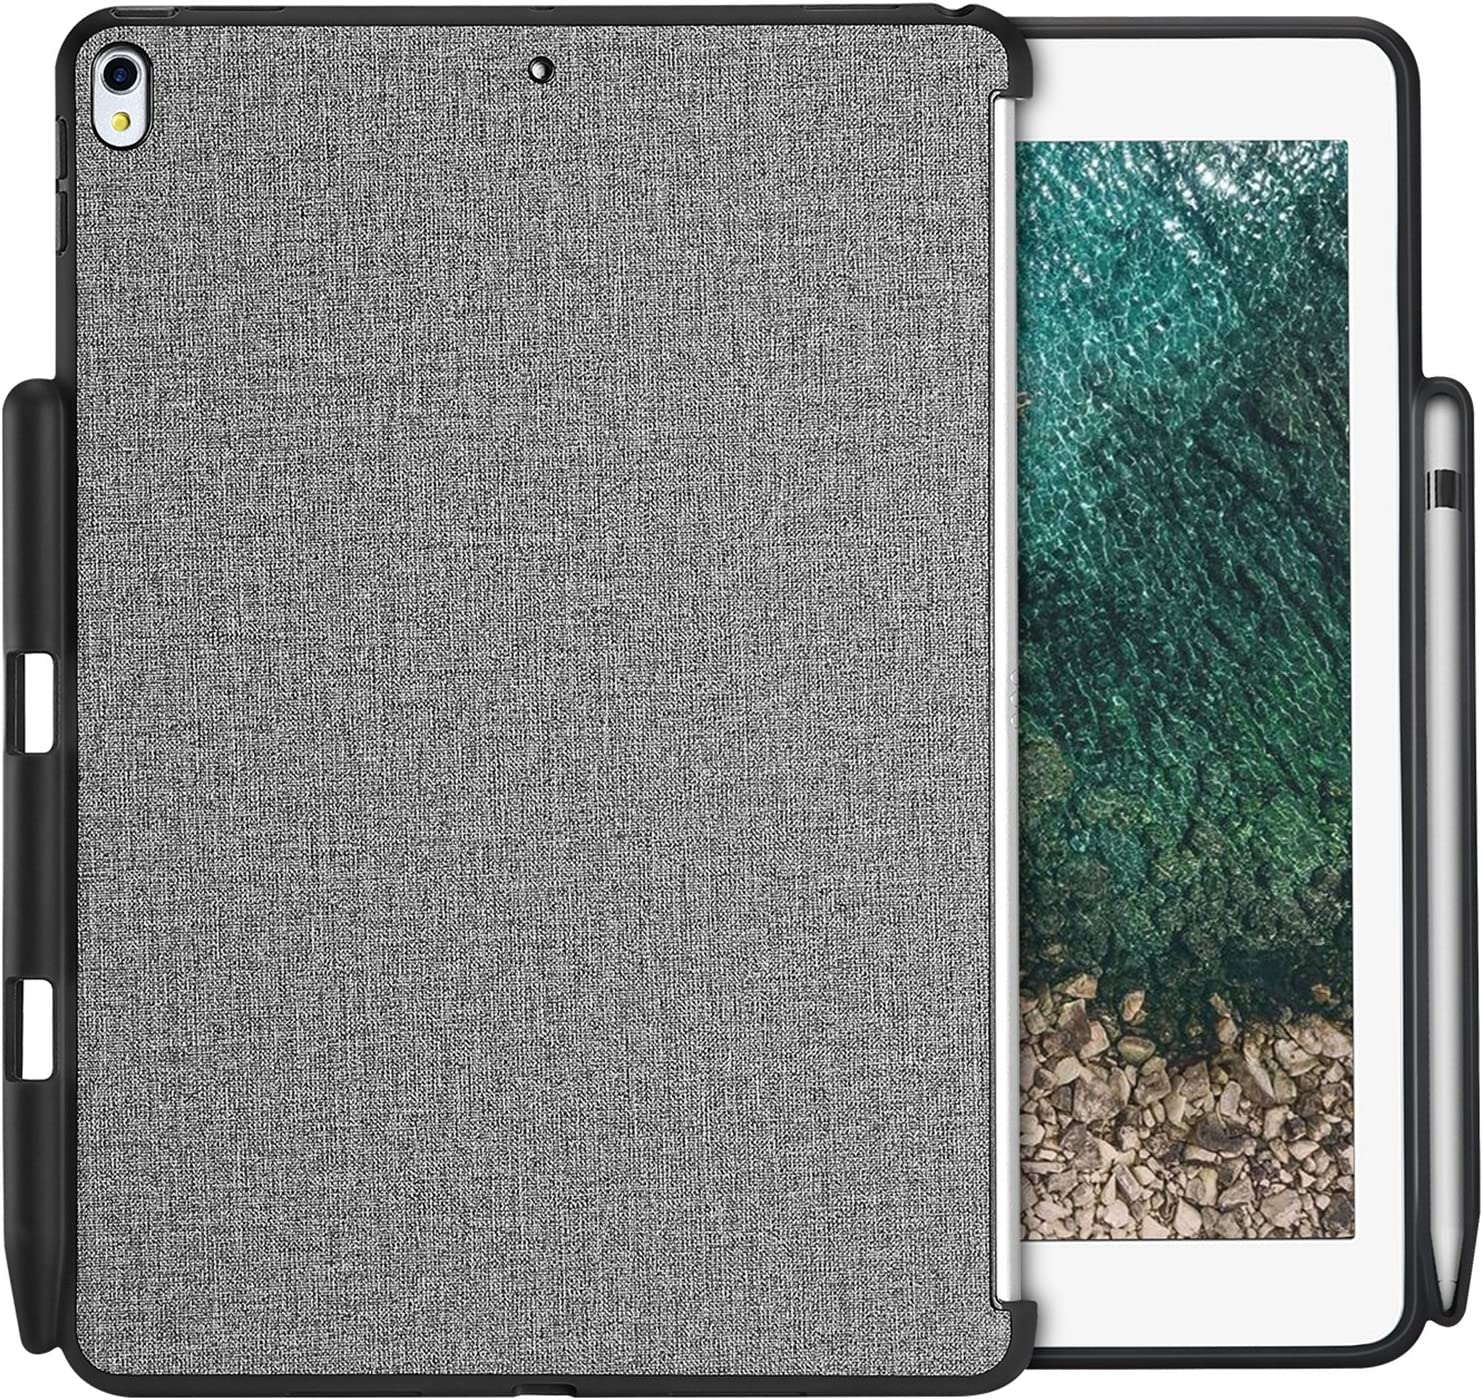 "ProCase iPad Air 10.5"" (3rd Gen) 2019 / iPad Pro 10.5 2017 Case, Companion Back Cover with Apple Pencil Holder for 10.5"" iPad Air/iPad Pro 10.5, Work with Apple Smart Keyboard and Smart Cover -Gray"